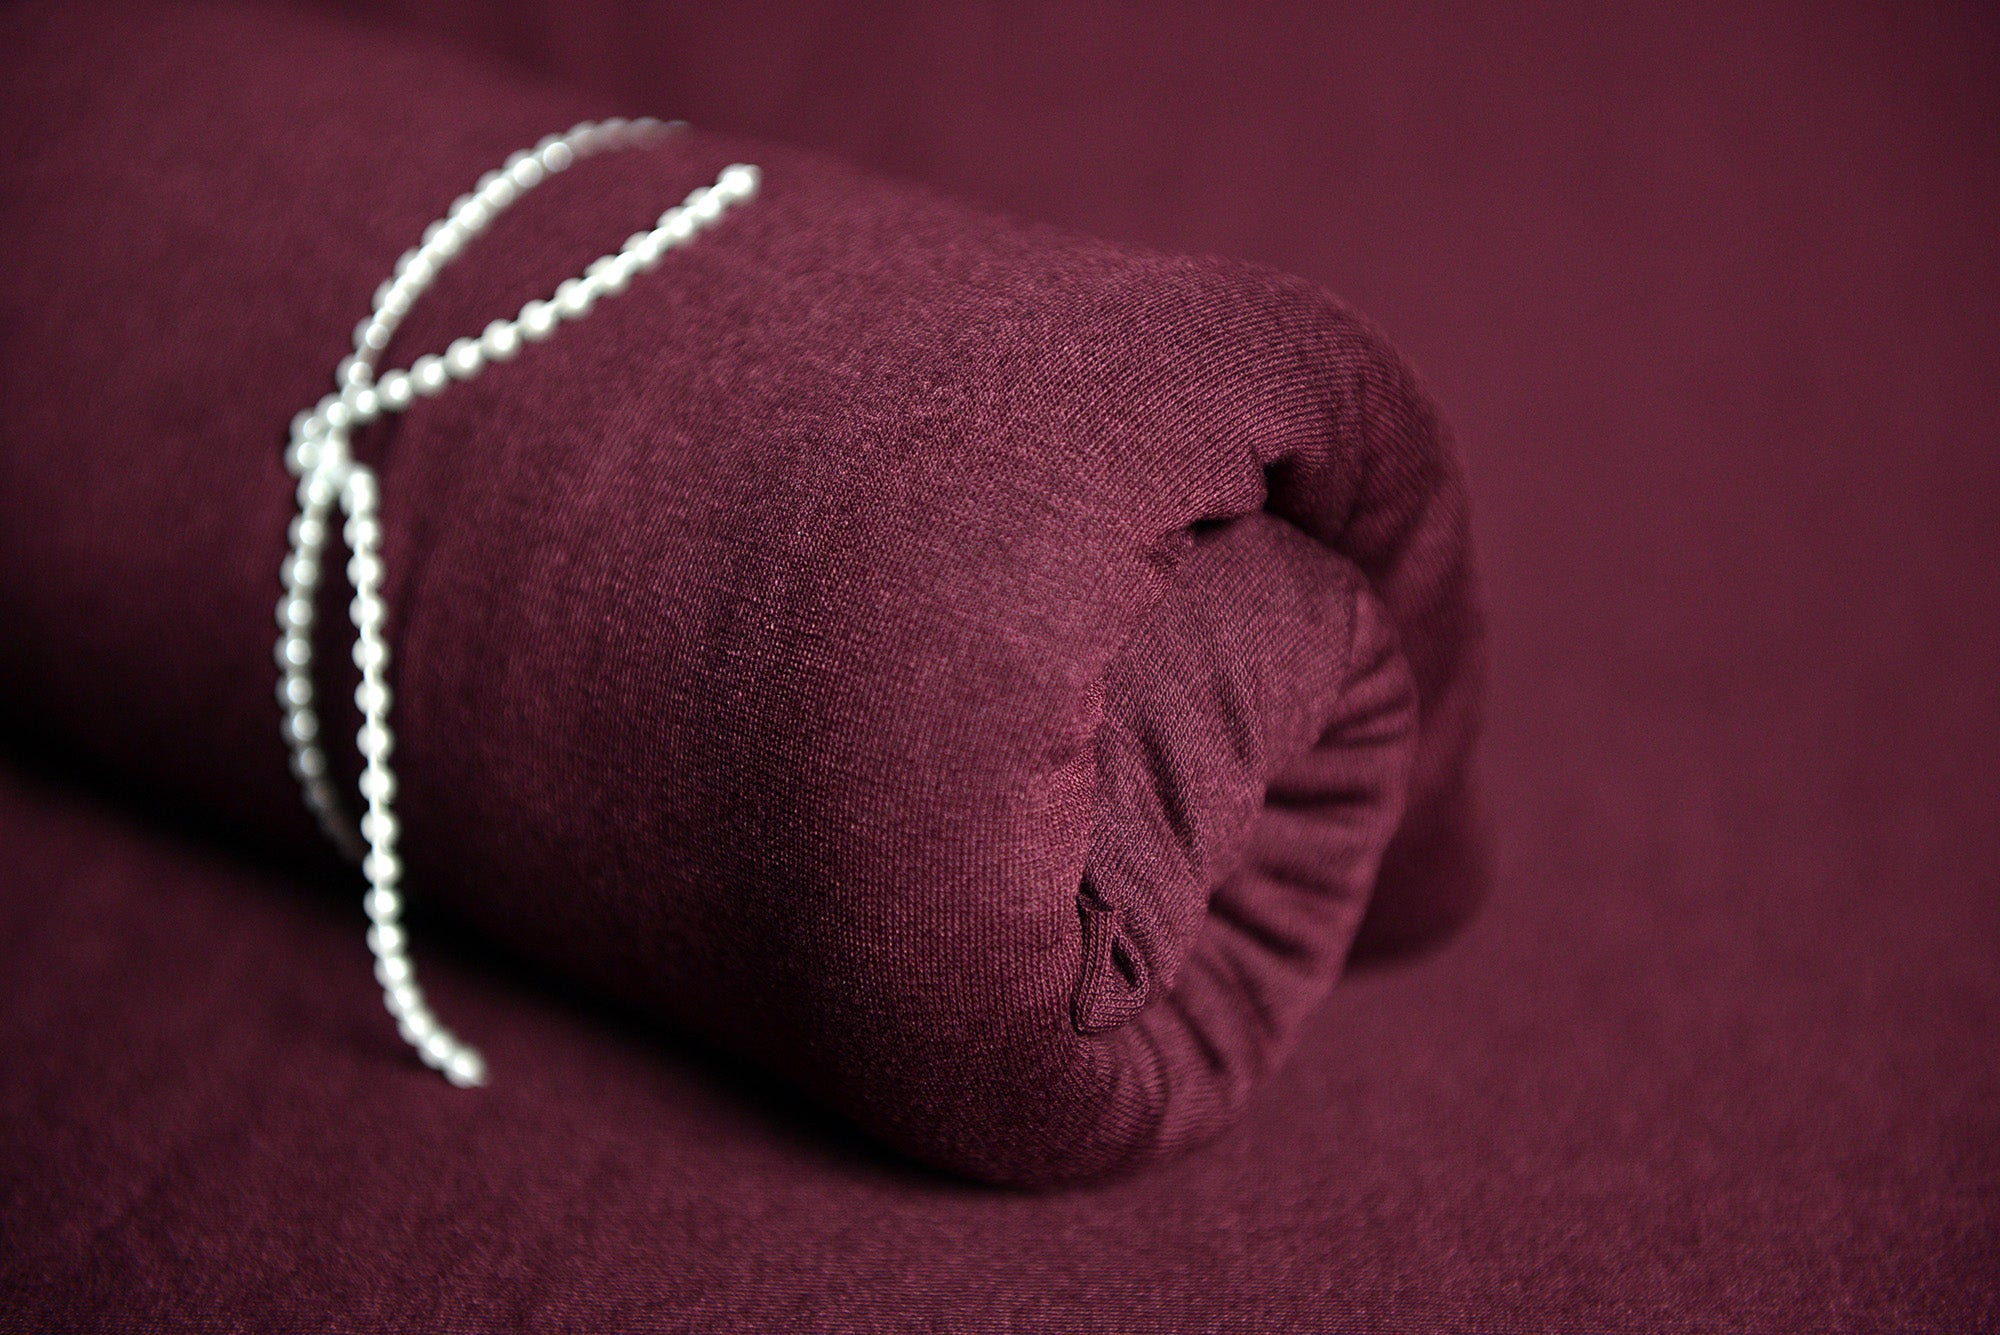 Bean Bag Fabric - Smooth - Burgundy-Newborn Photography Props